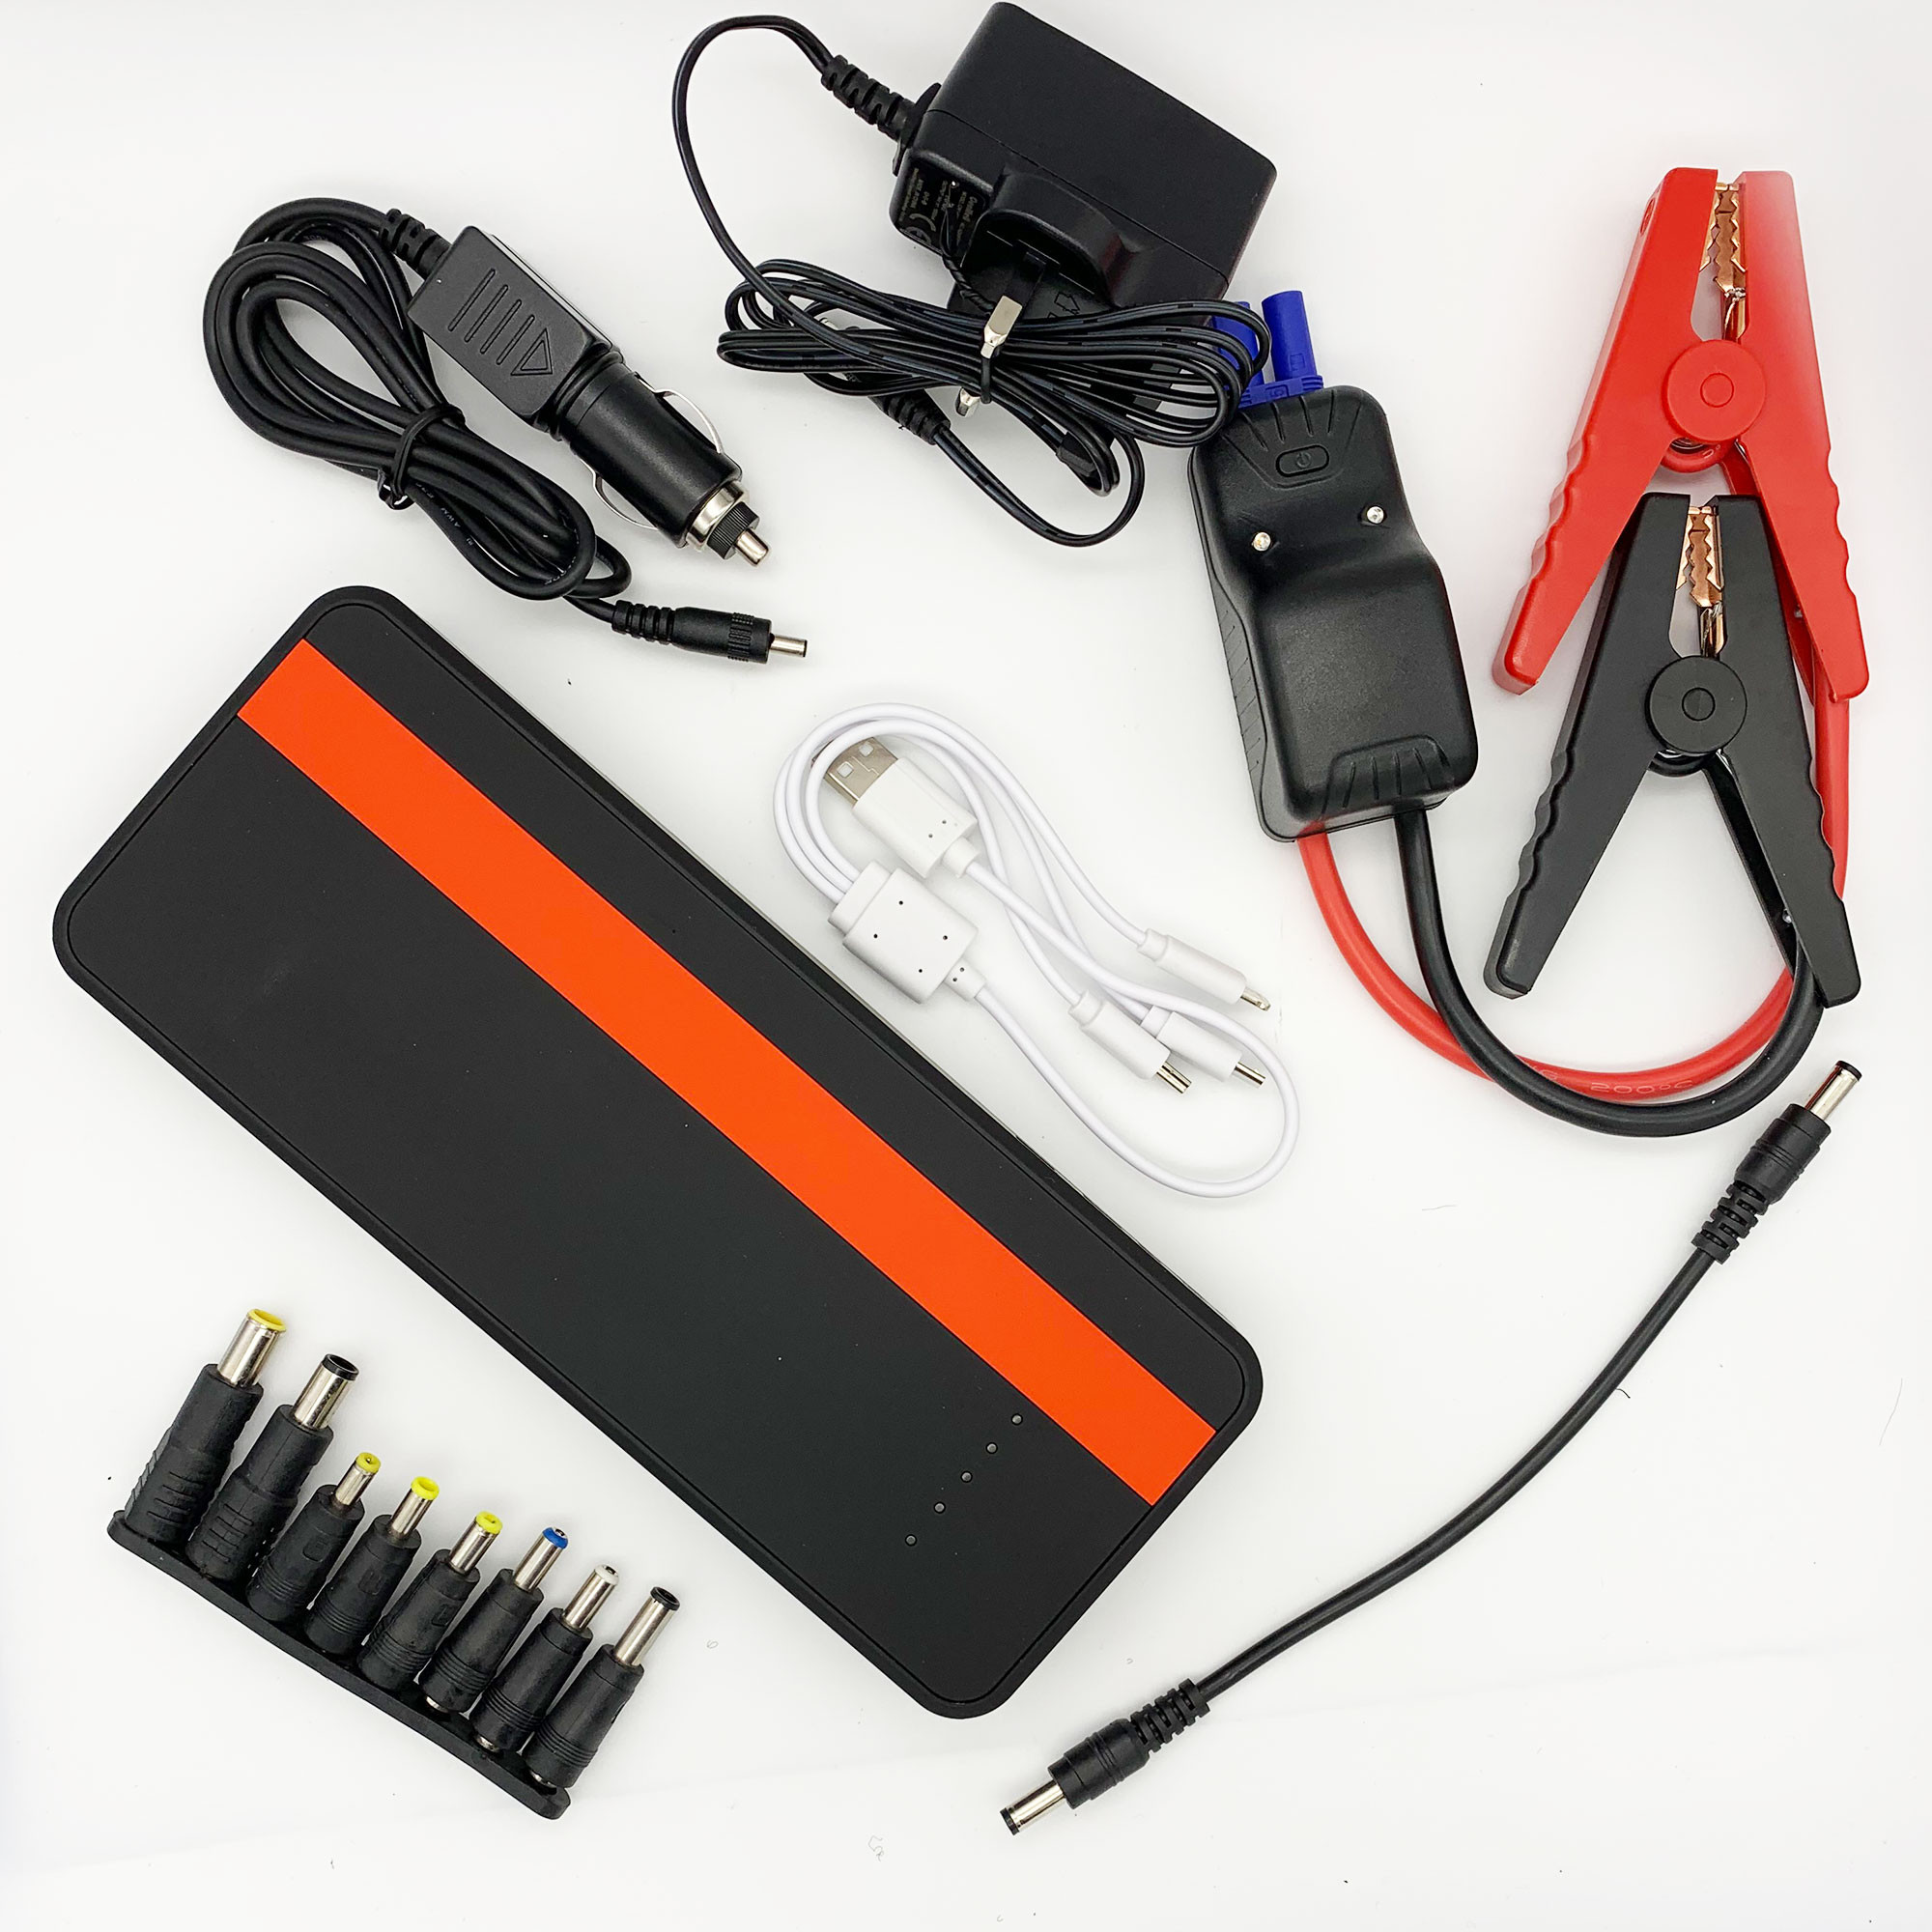 Xs Powerpack Multi Function Jump Starter Start Current 300A Peak Current 600A, Complete with Torch.